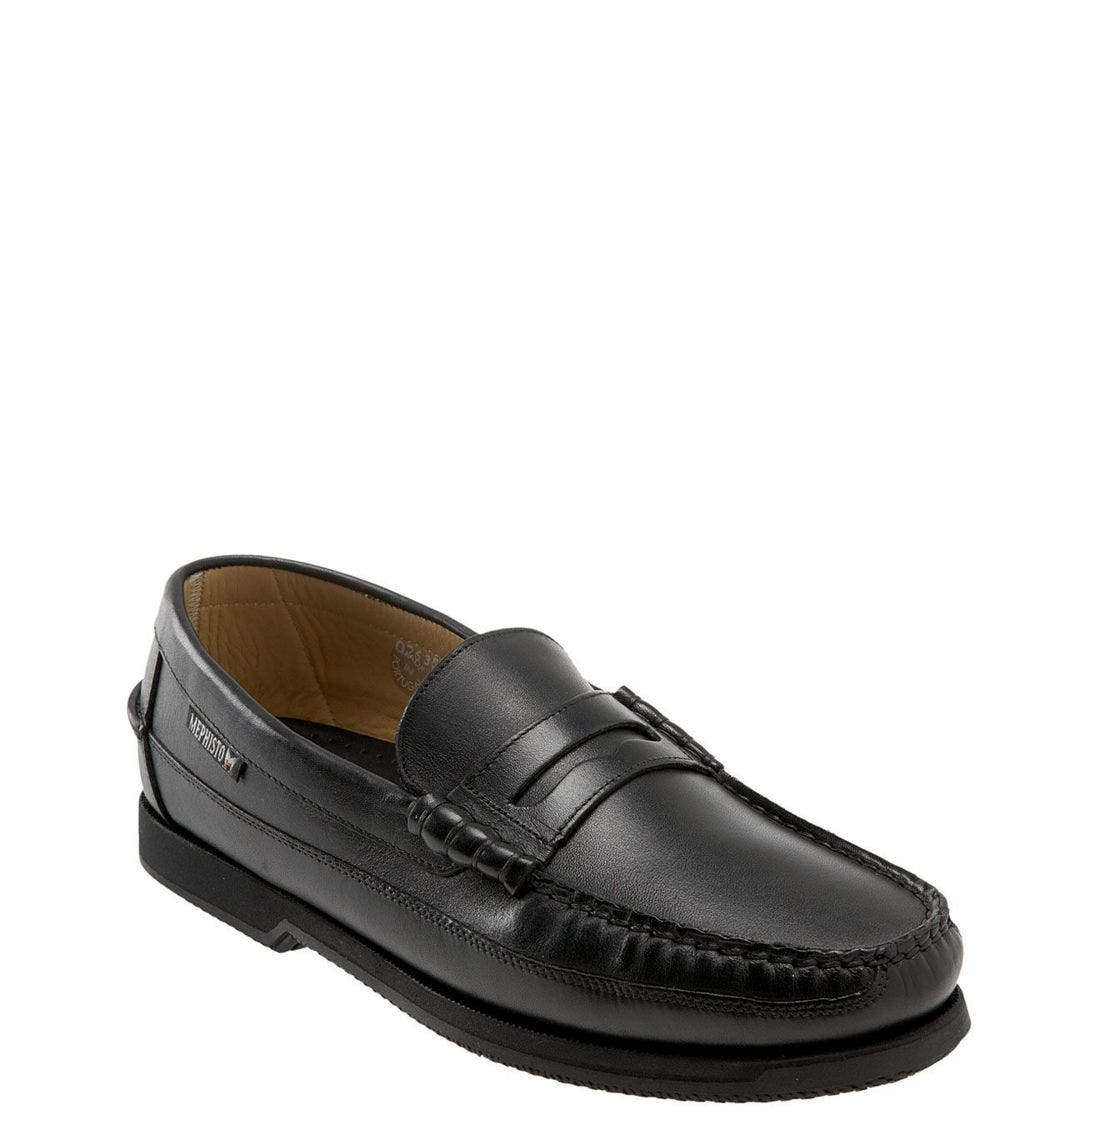 'Cap Vert' Penny Loafer,                         Main,                         color, Black Leather